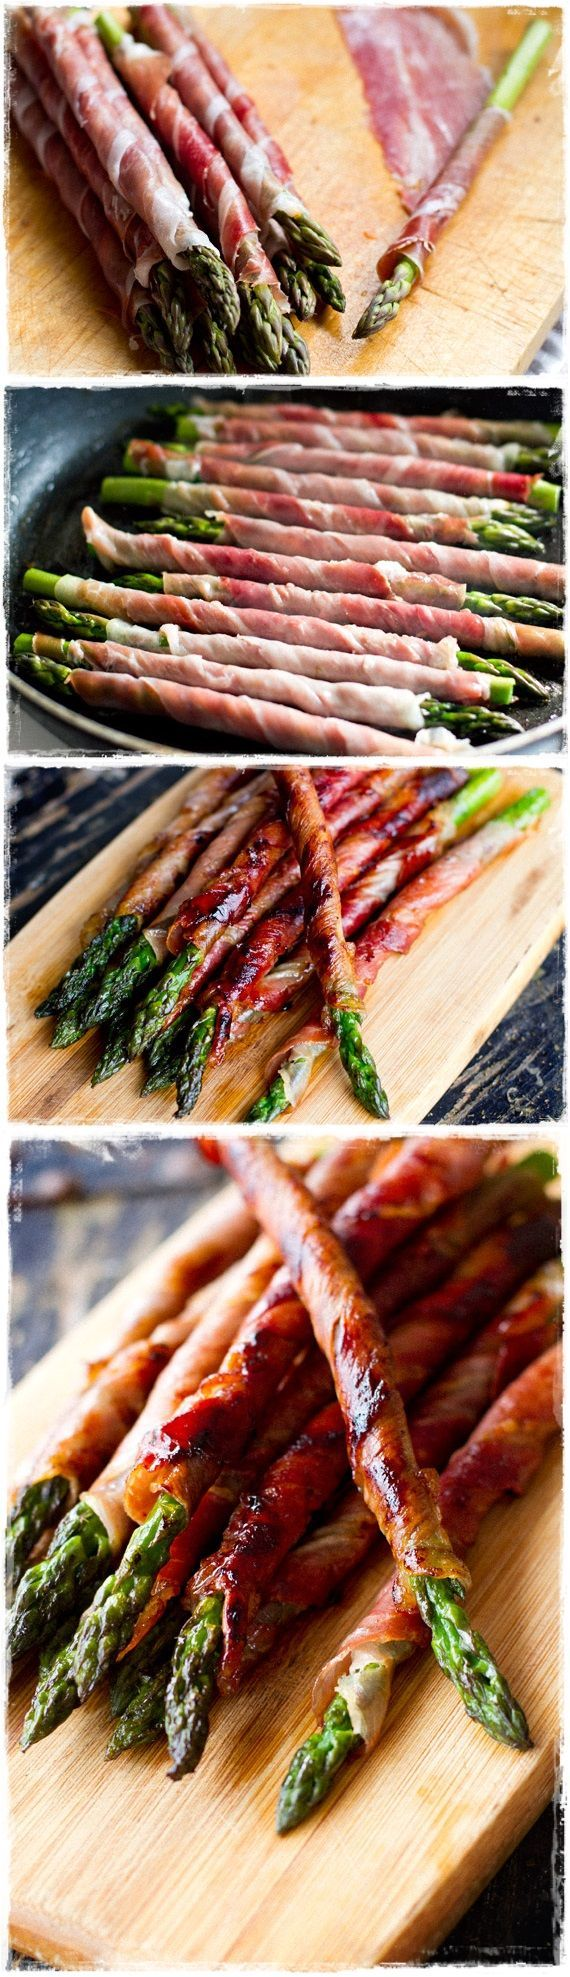 Prosciutto Wrapped Asparagus | Cook Blog